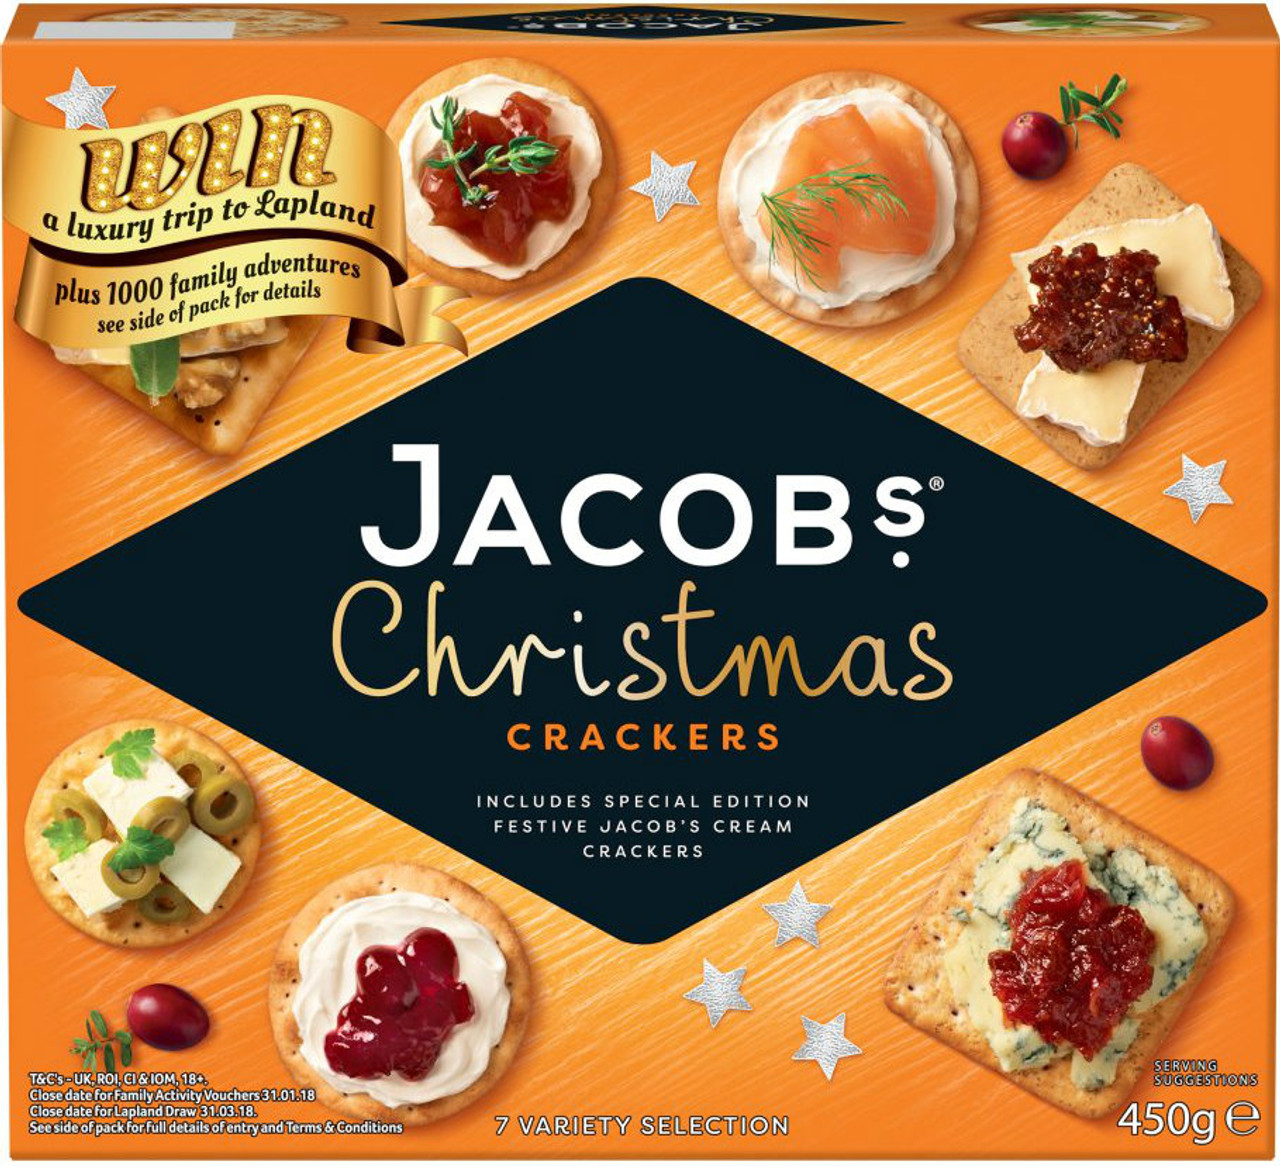 Best Christmas Crackers 2019 Jacobs Festive Christmas Crackers 450g *BEST BEFORE AUGUST